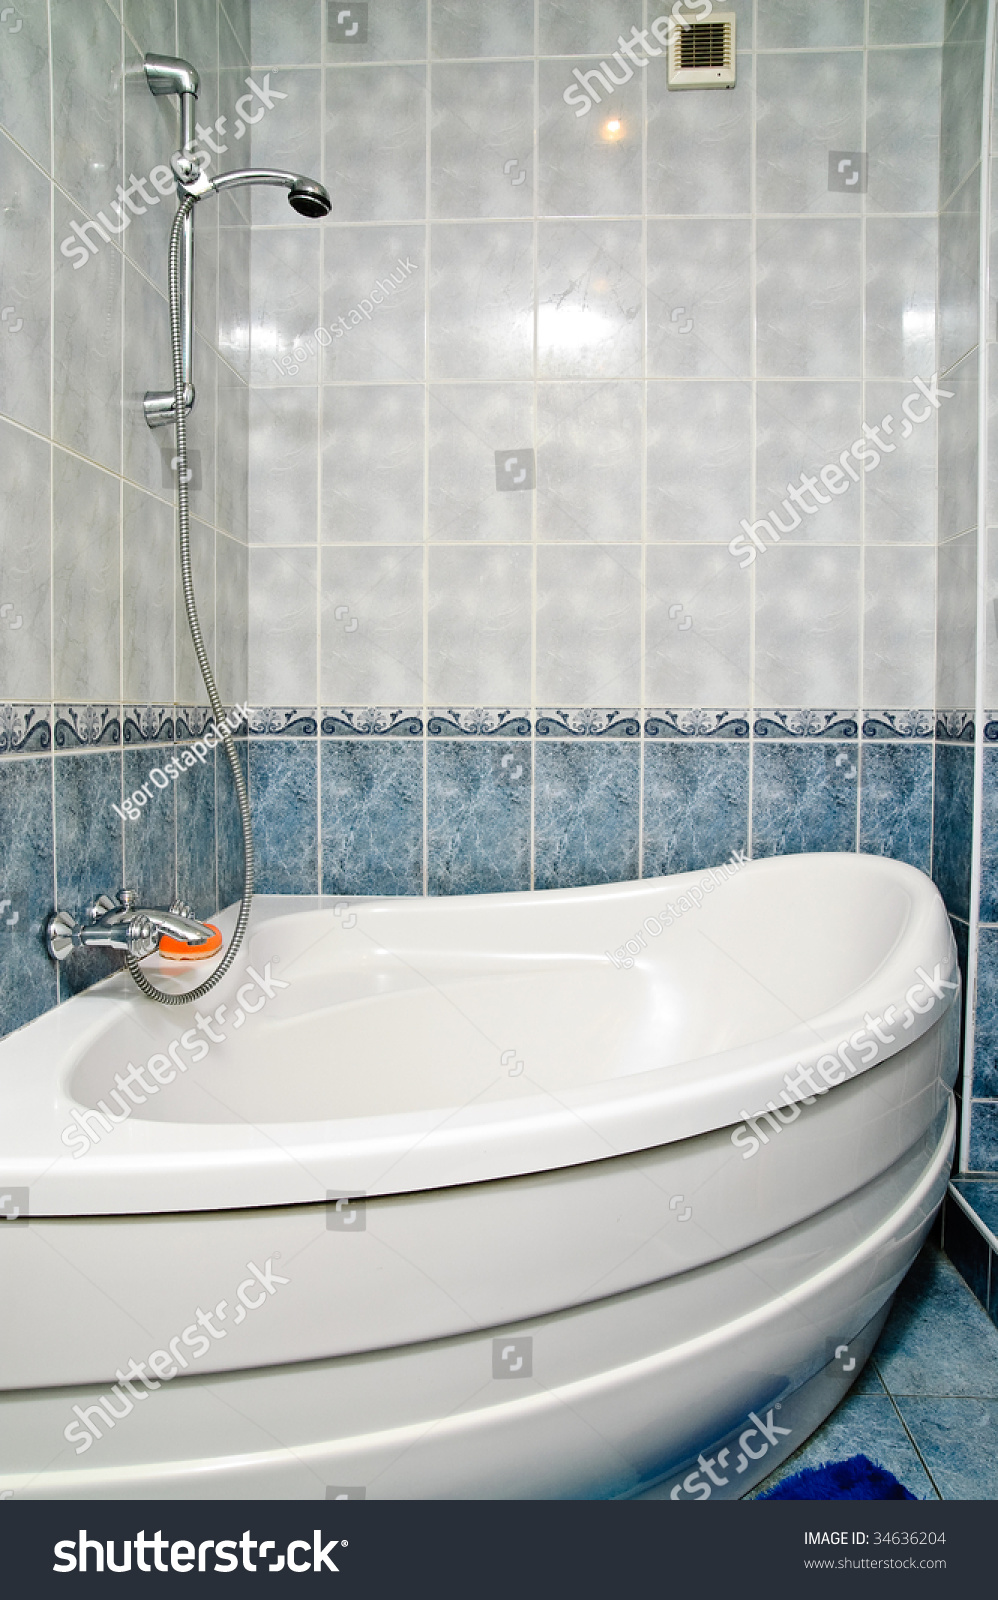 Bathtub and shower in a tiled bathroom | EZ Canvas